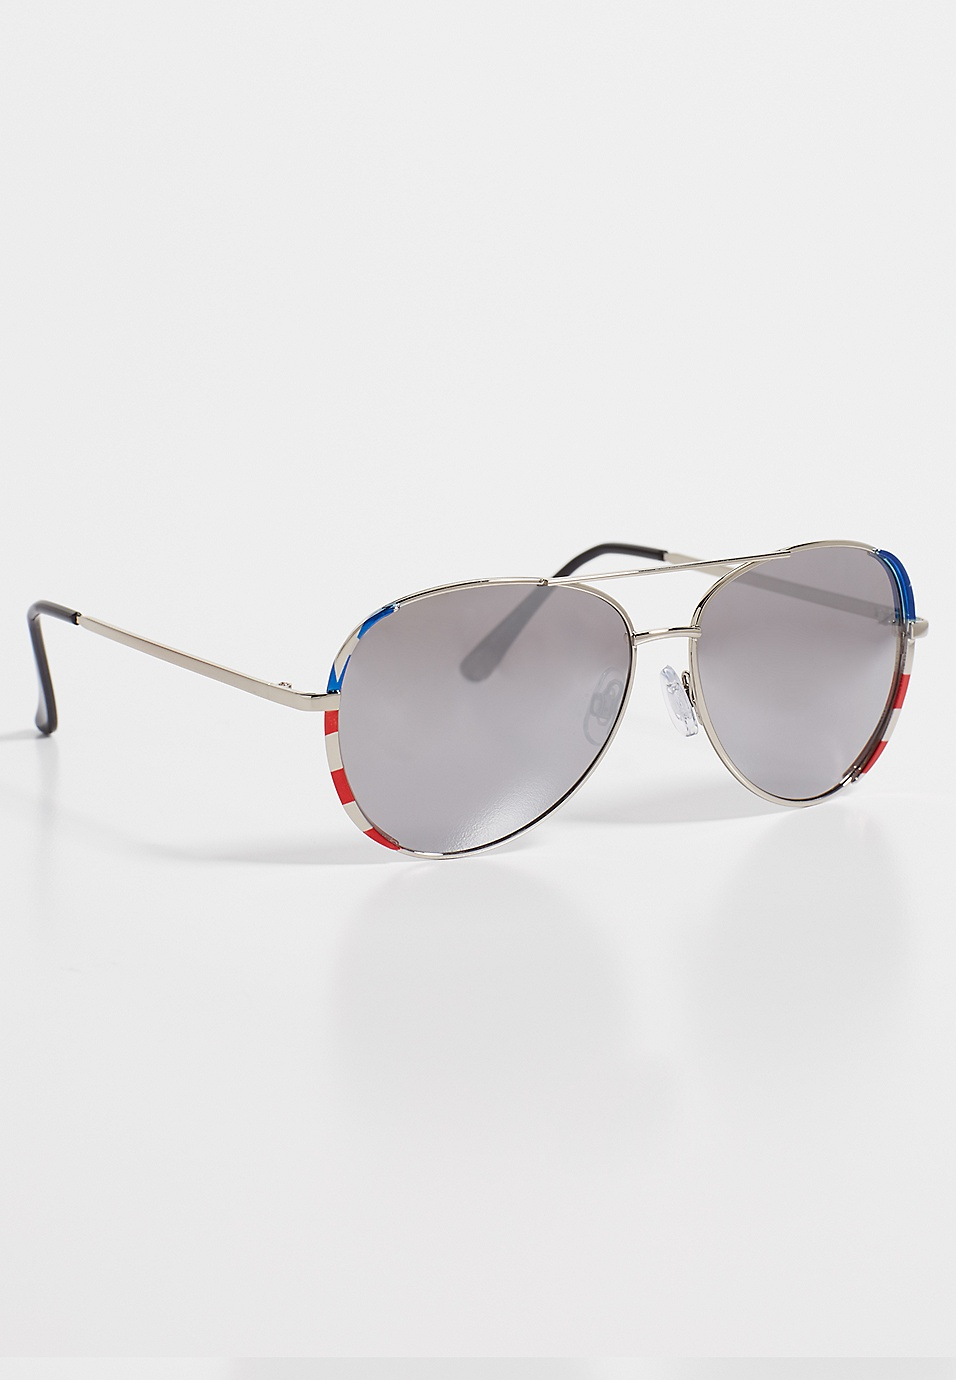 85496f749e69 Airmail aviator sunglasses